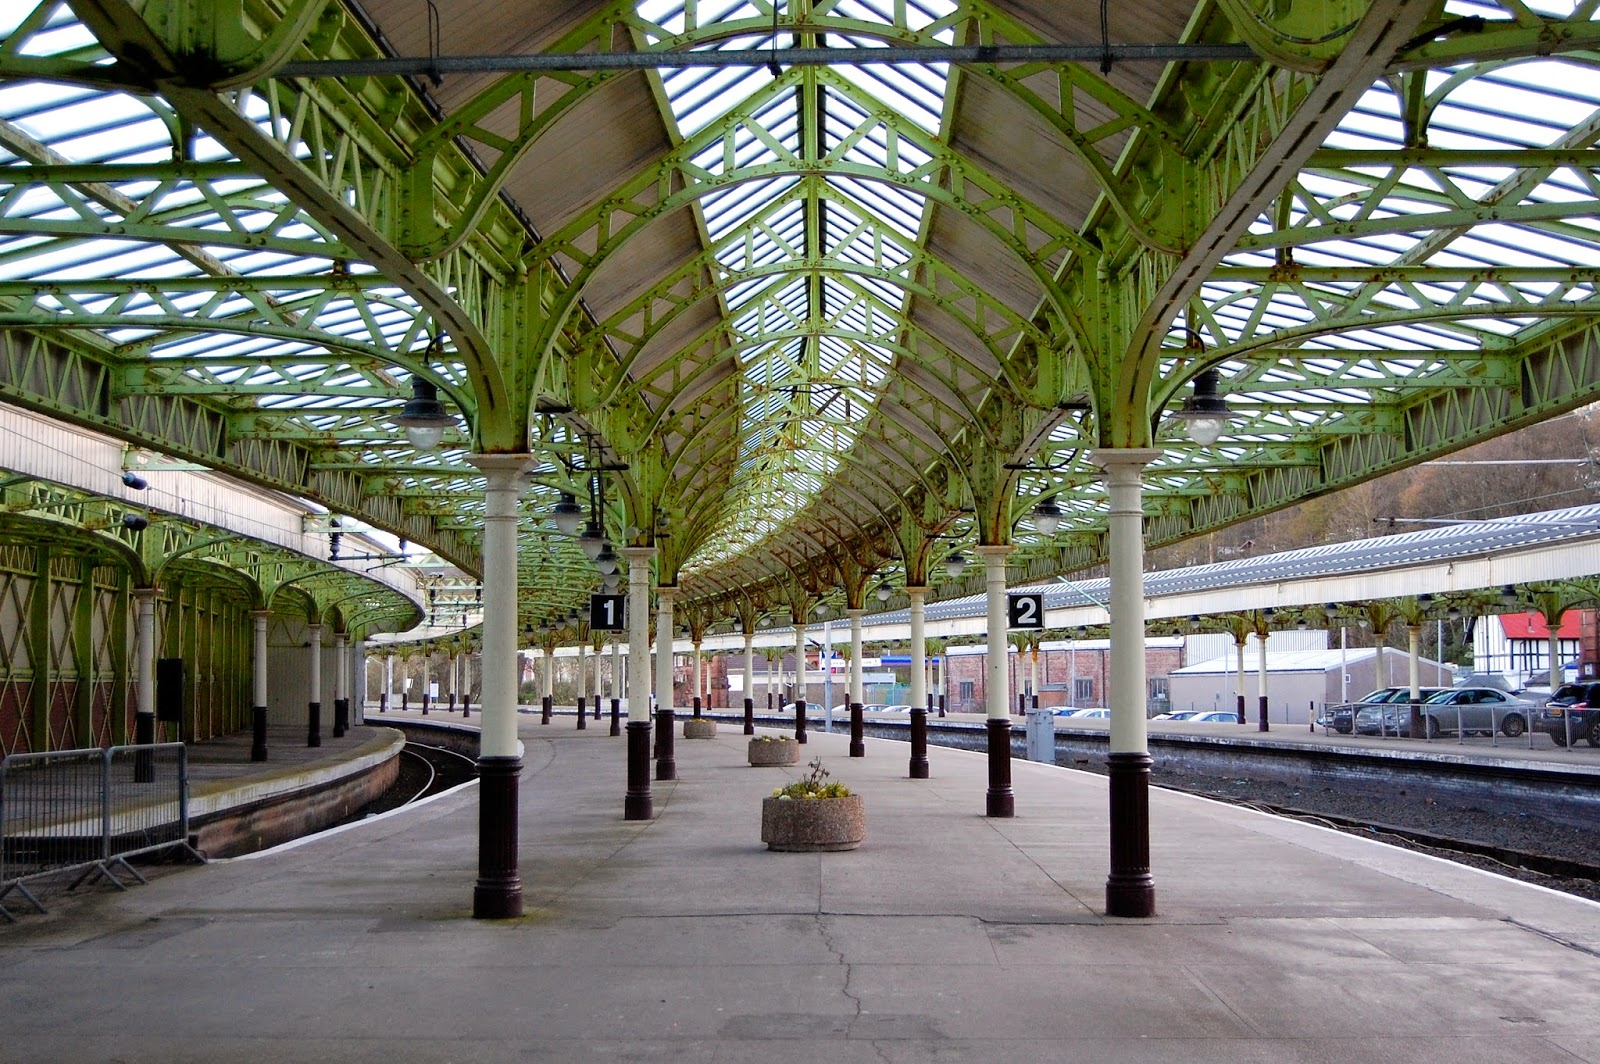 Train station at Wemyss Bay, Scotland